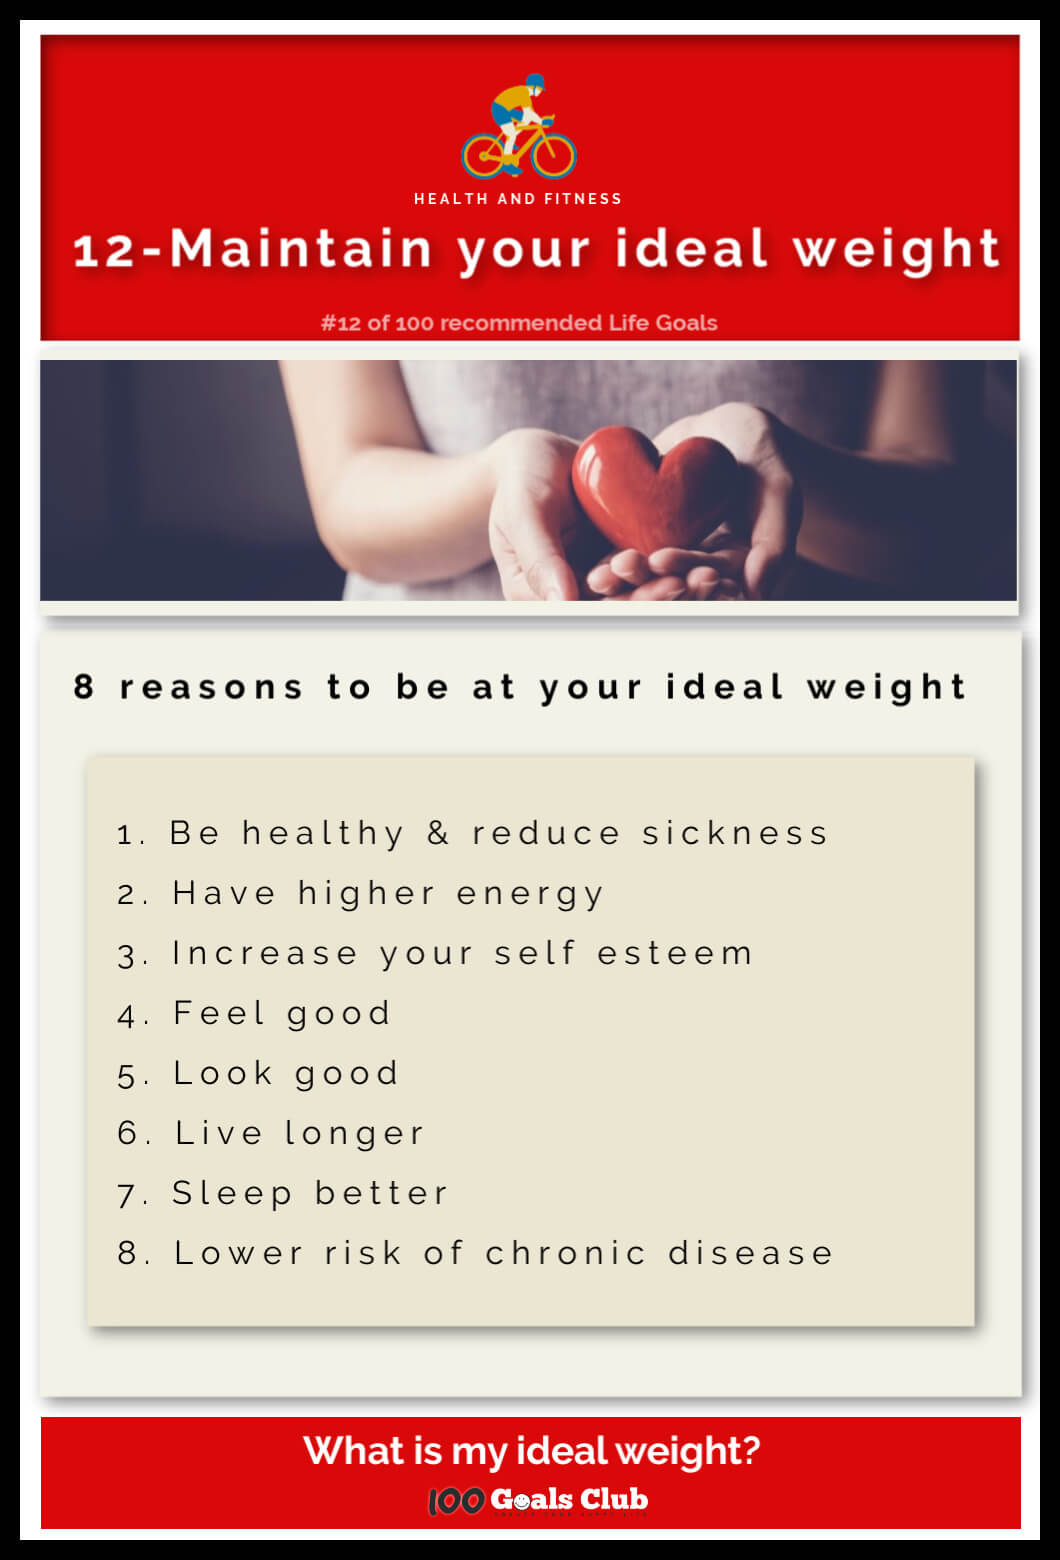 What is my ideal weight?